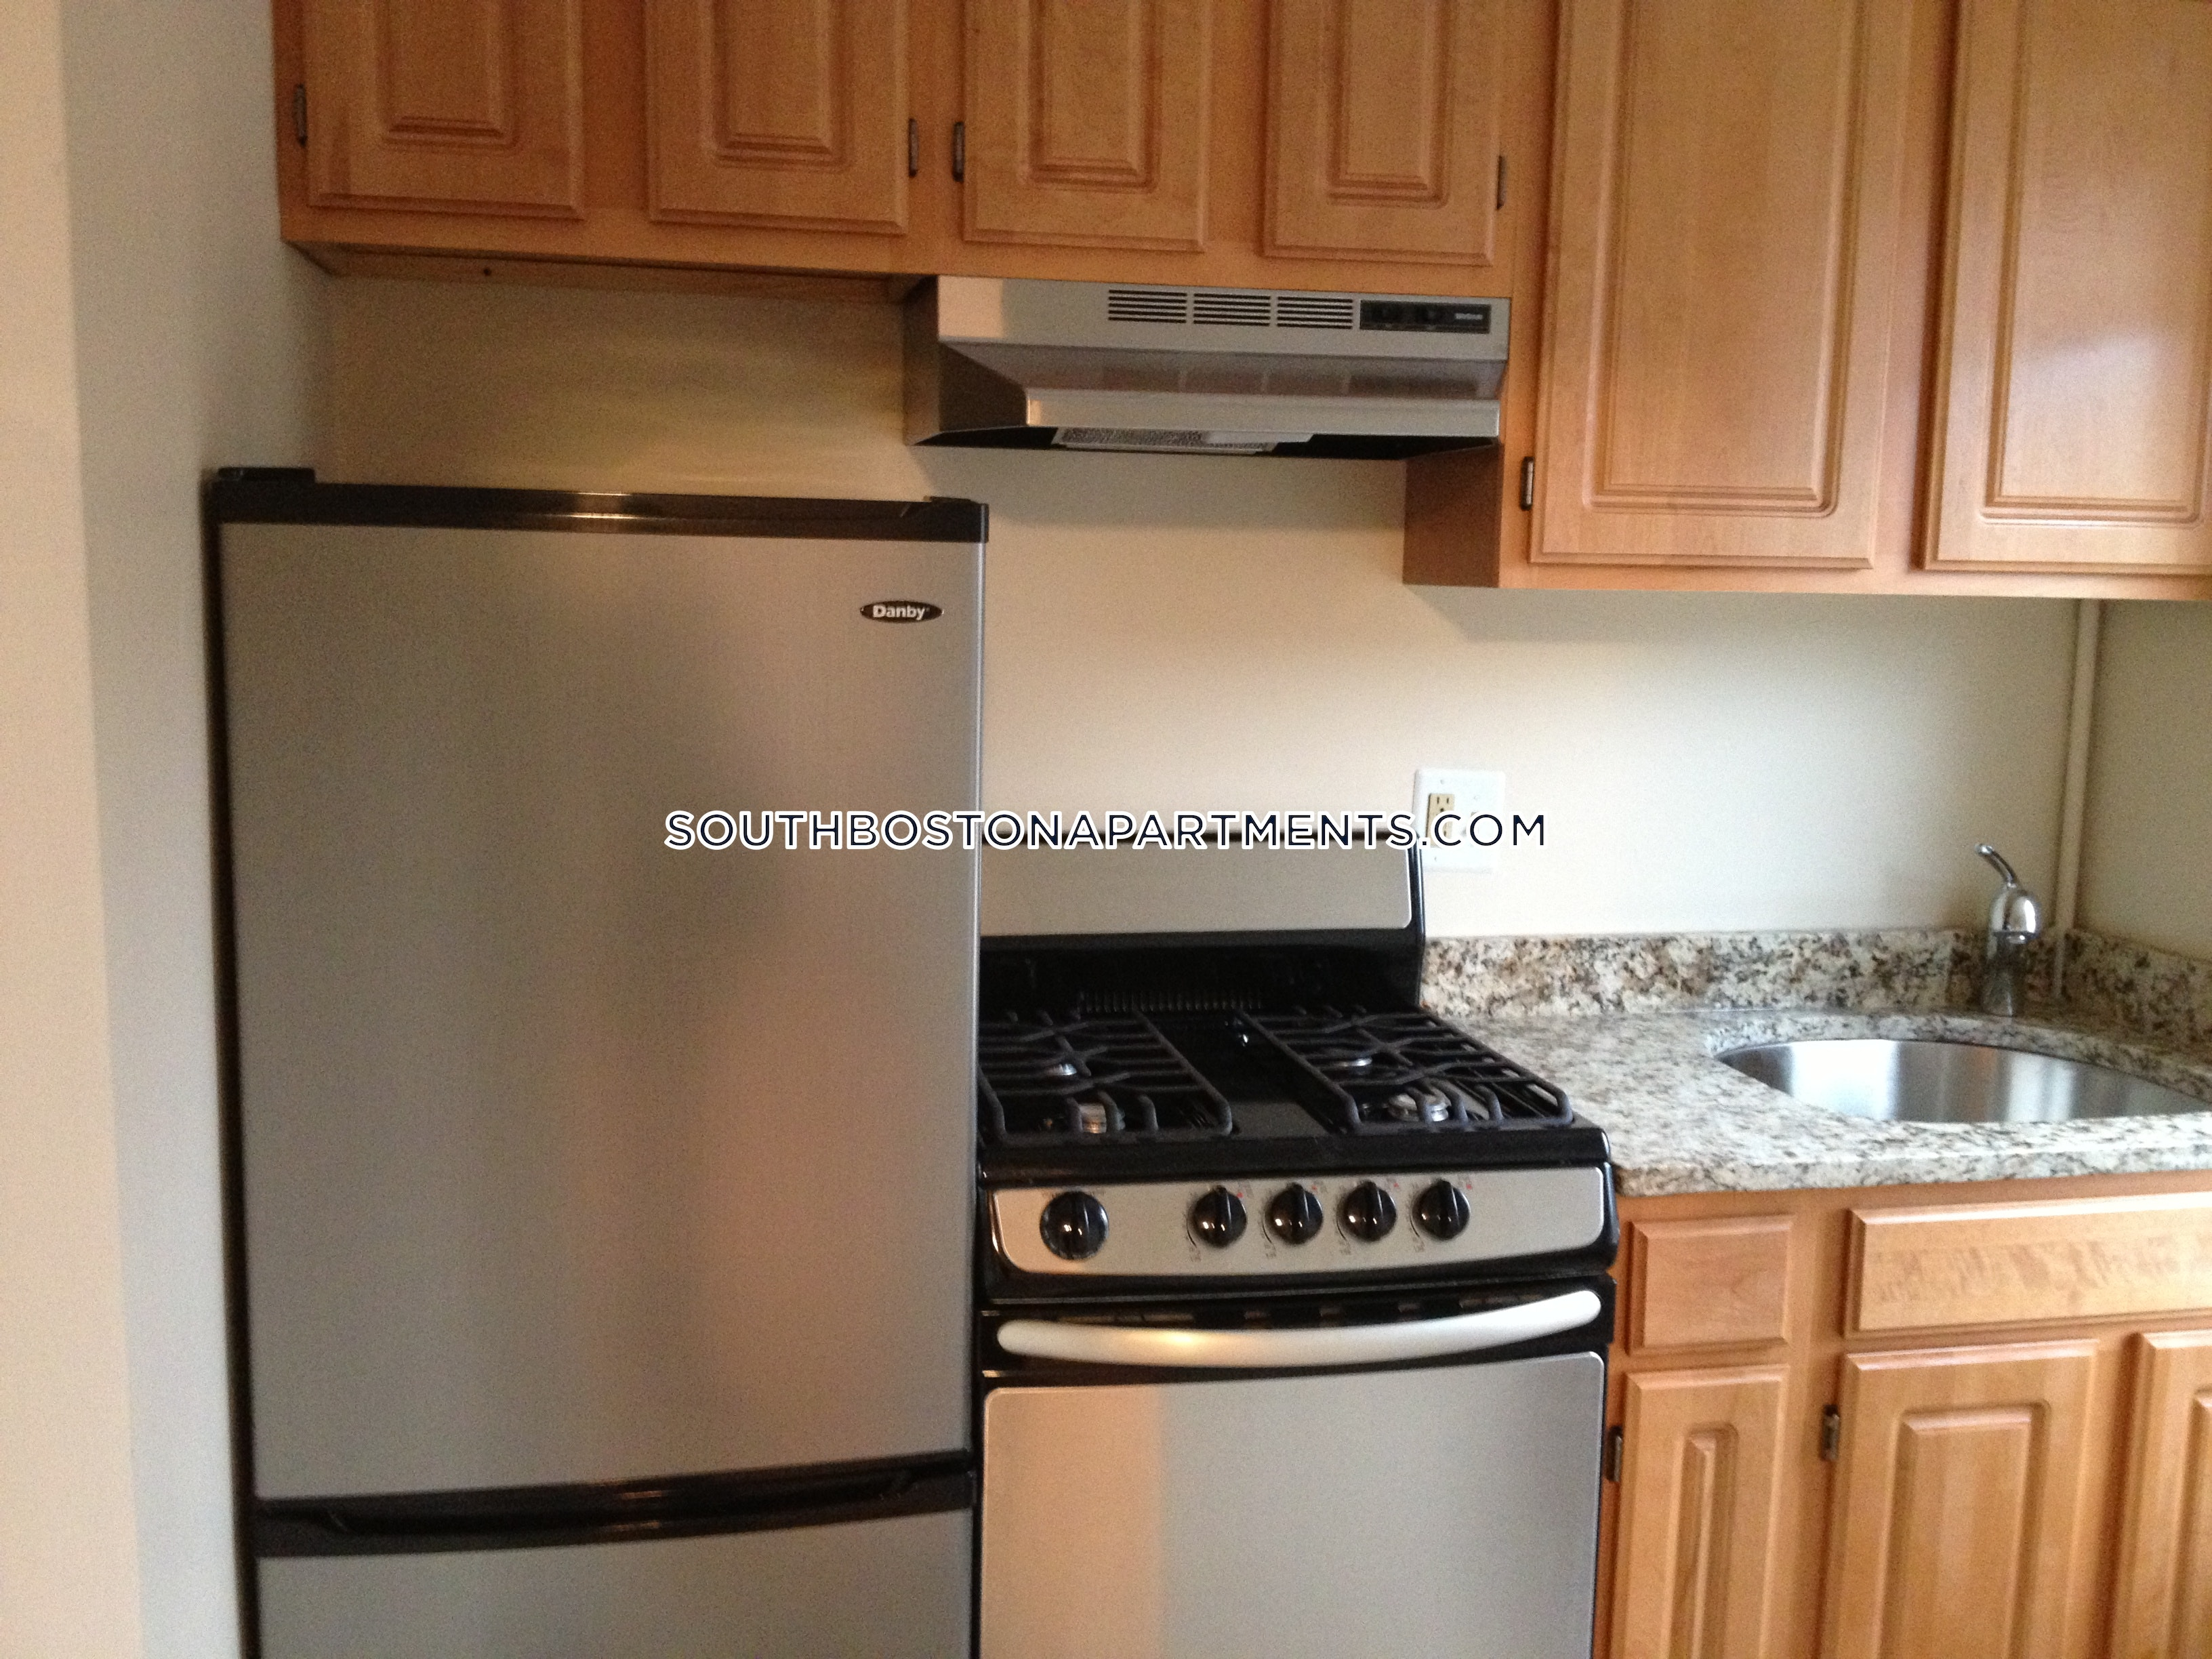 2 Beds 1 Bath - Boston - South Boston - West Side $2,250 - Boston - South Boston - West Side $2,250